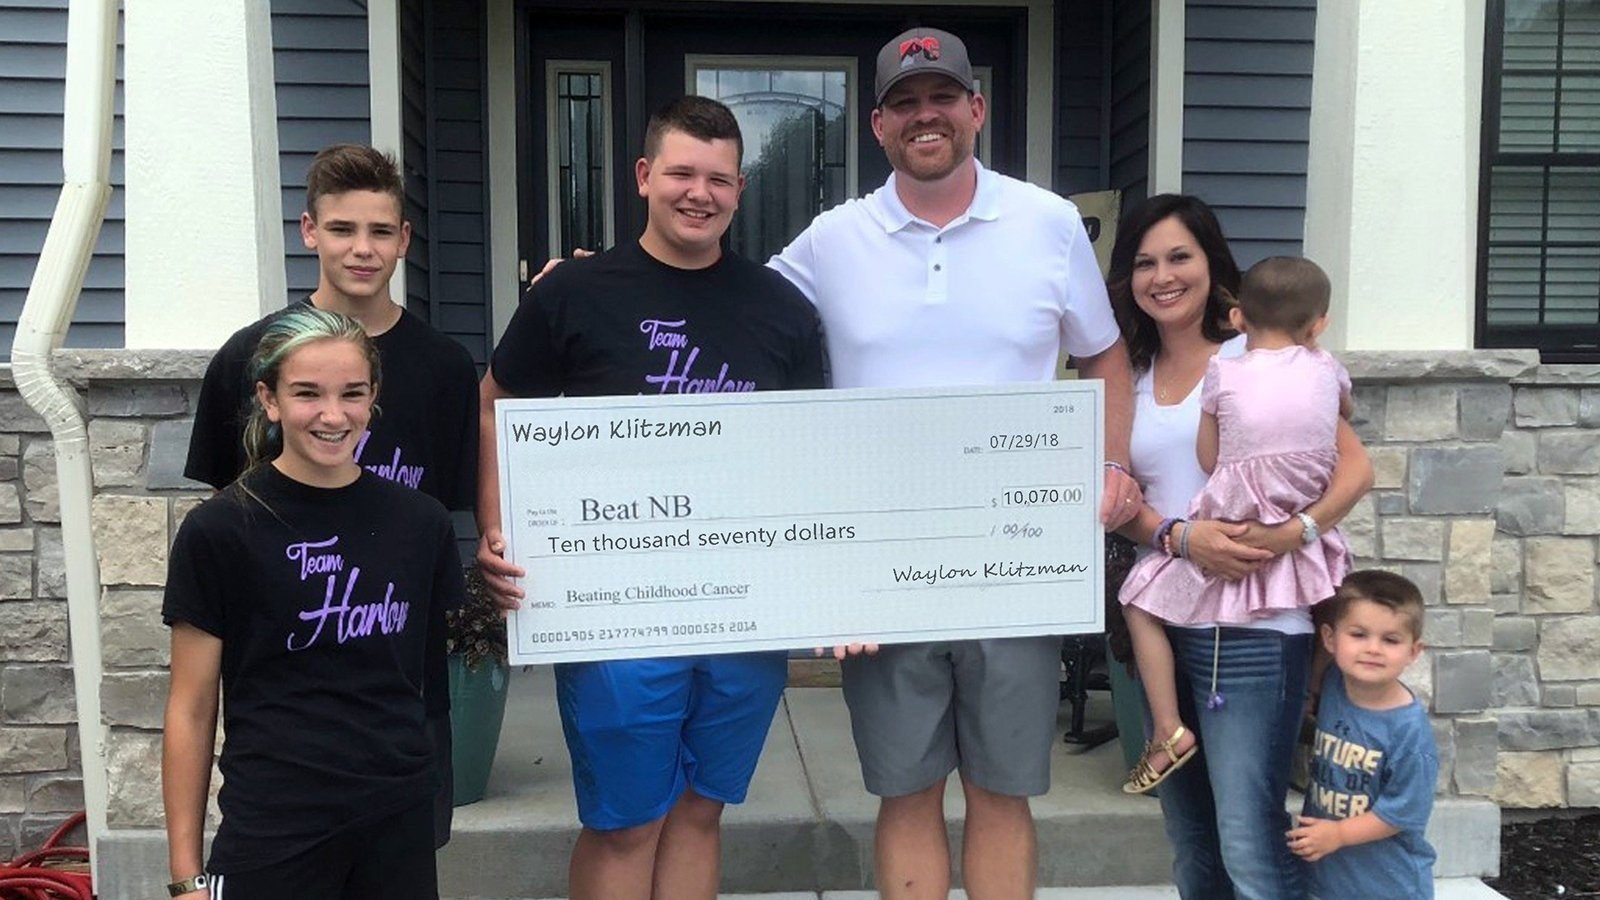 Waylon Klitzman delivers a $10,000 check to cancer patient Harlow Phillips' family.